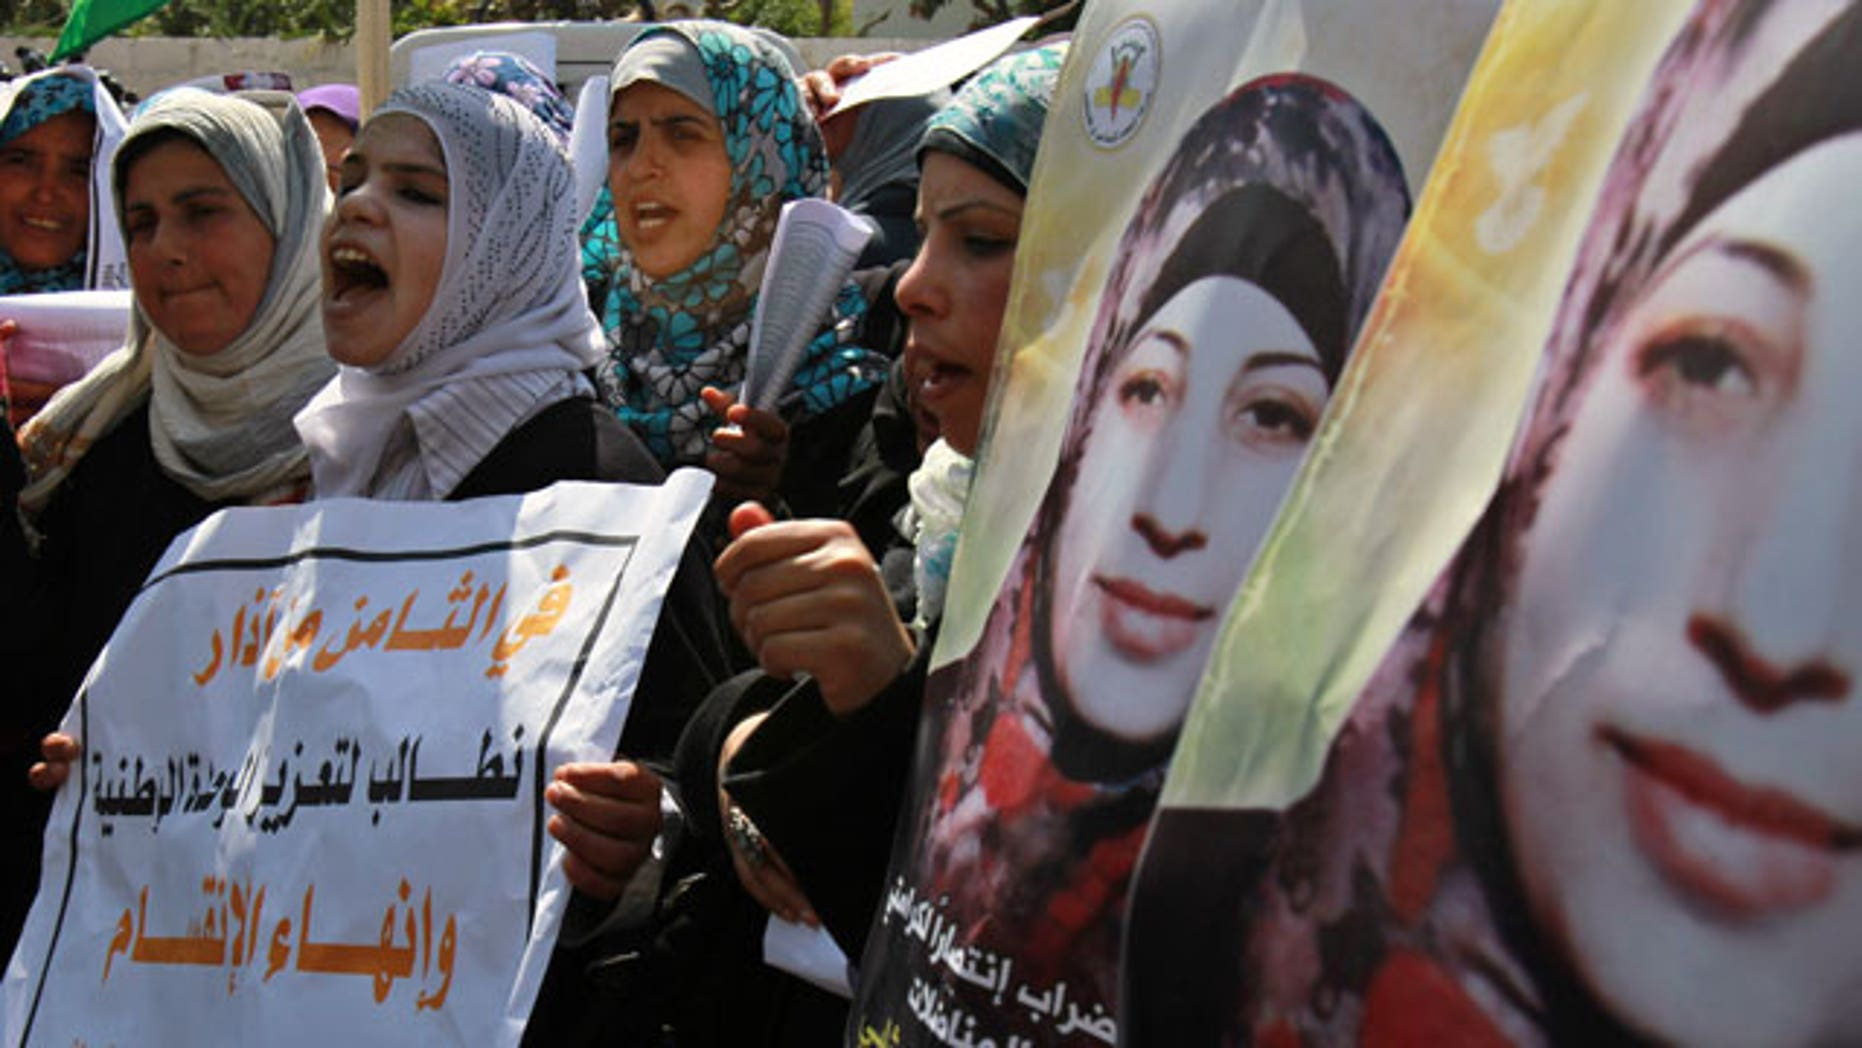 Mar. 8, 2012: Palestinian women take part in a protest in solidarity with Hana Shalabi, a Palestinian prisoner jailed in Israel and who has been on hunger strike for 22 days, and marking International Women's Day in front of the International Red cross offices in Gaza City.